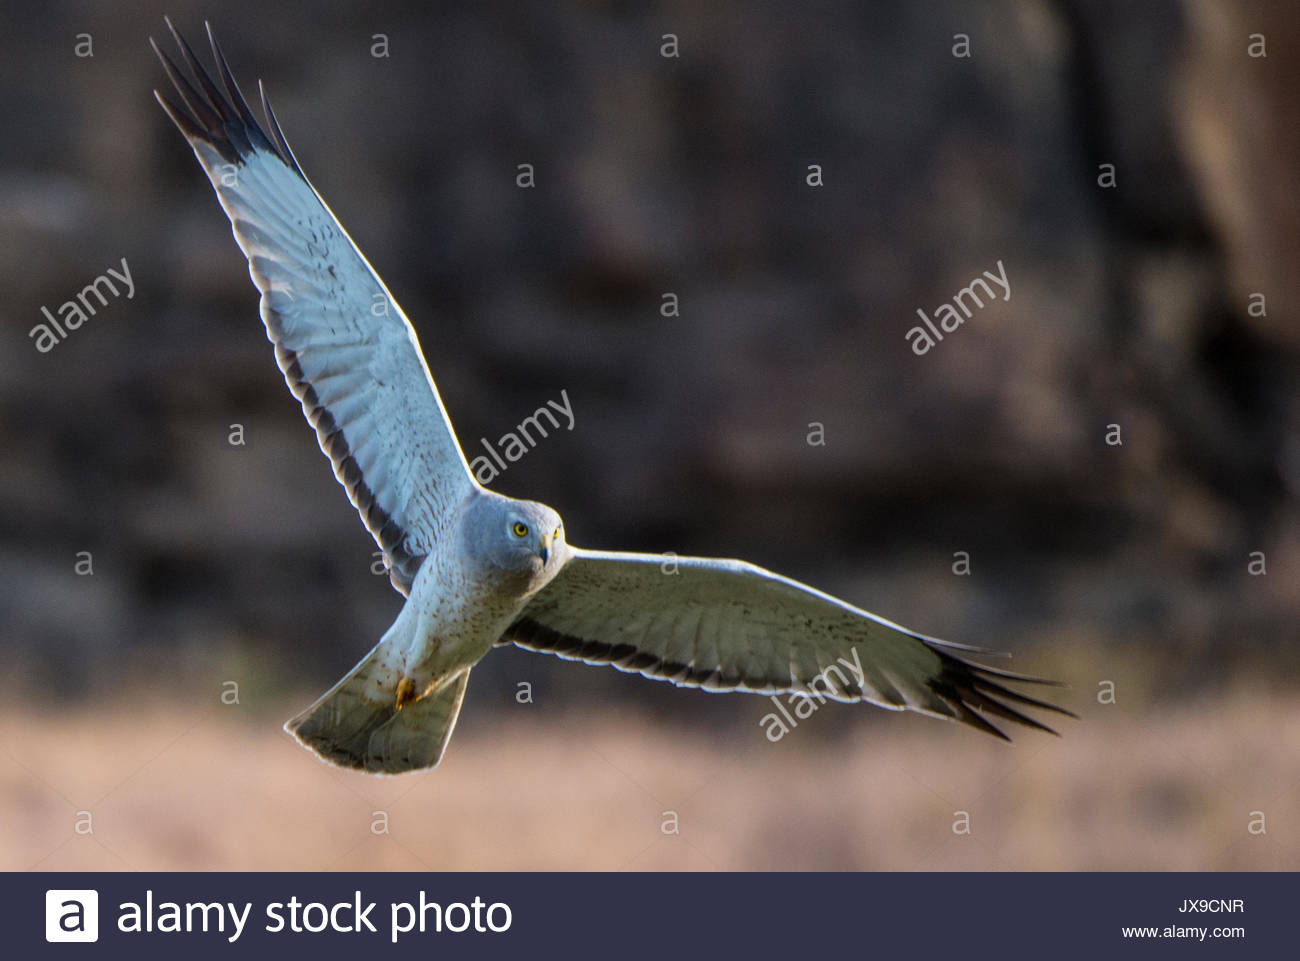 A northern harrier, Circus hudsonius, in flight at Drumheller's Coulee. Stock Photo